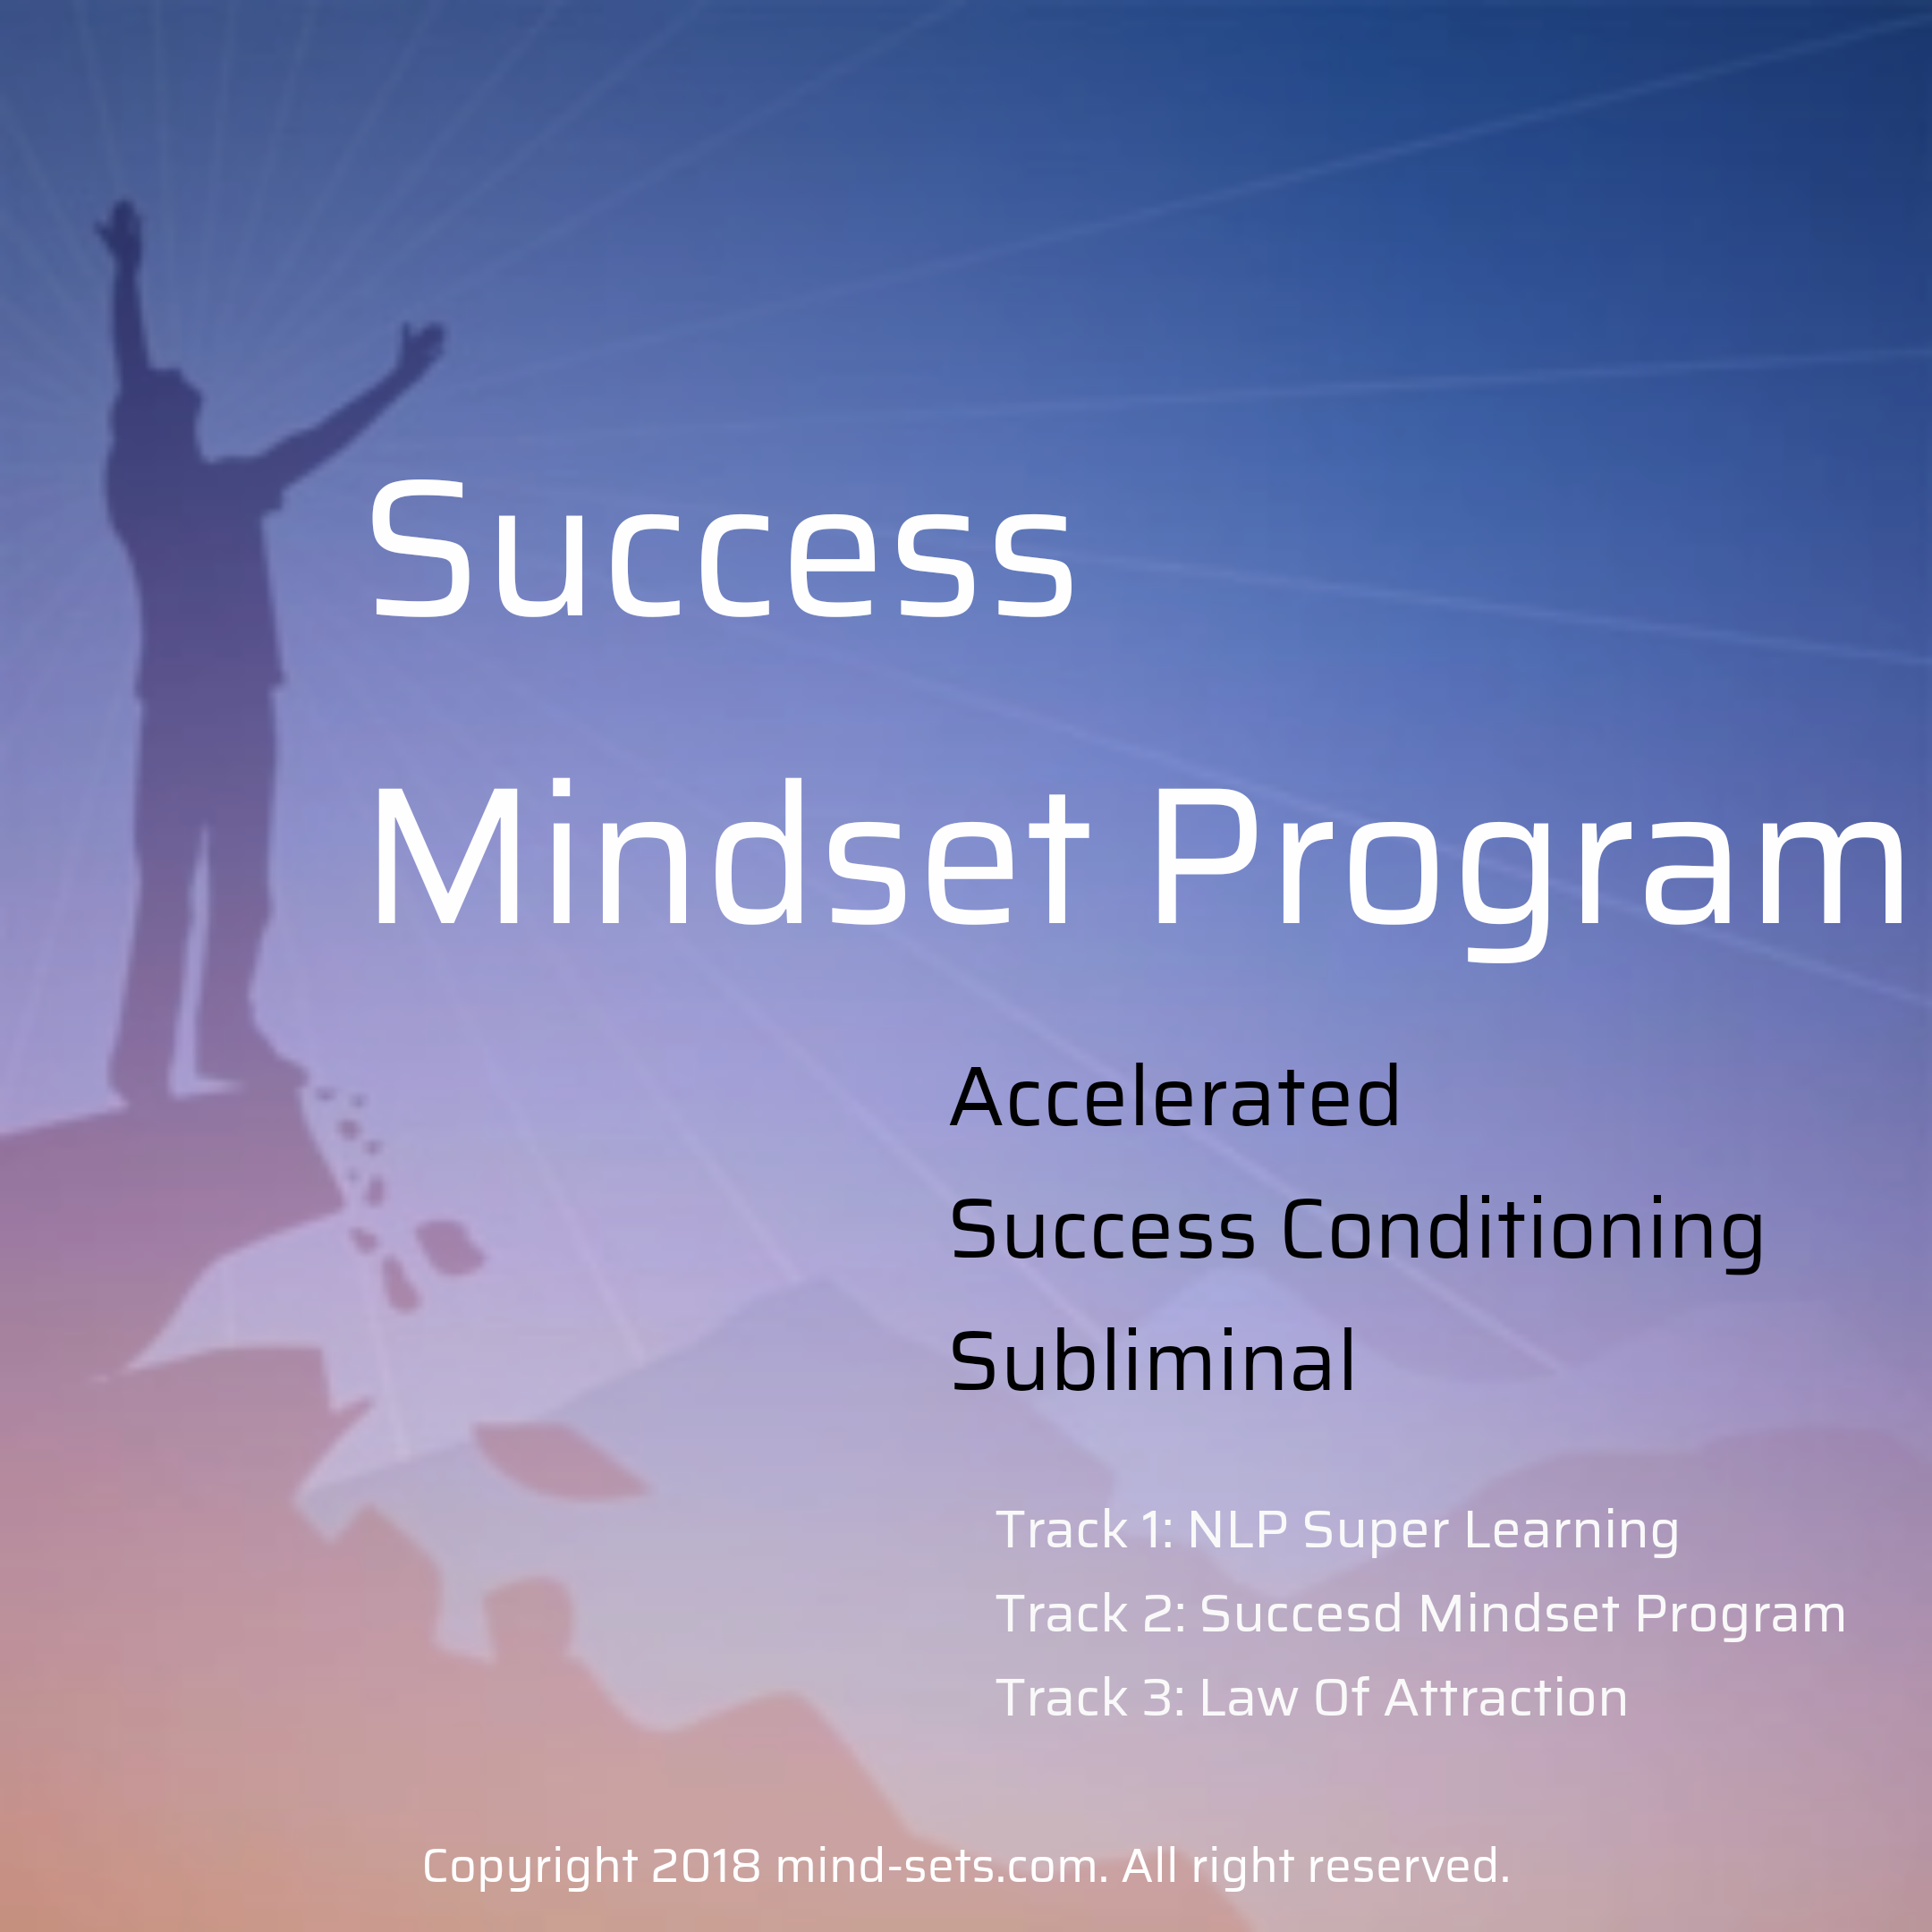 Success Mindset Program